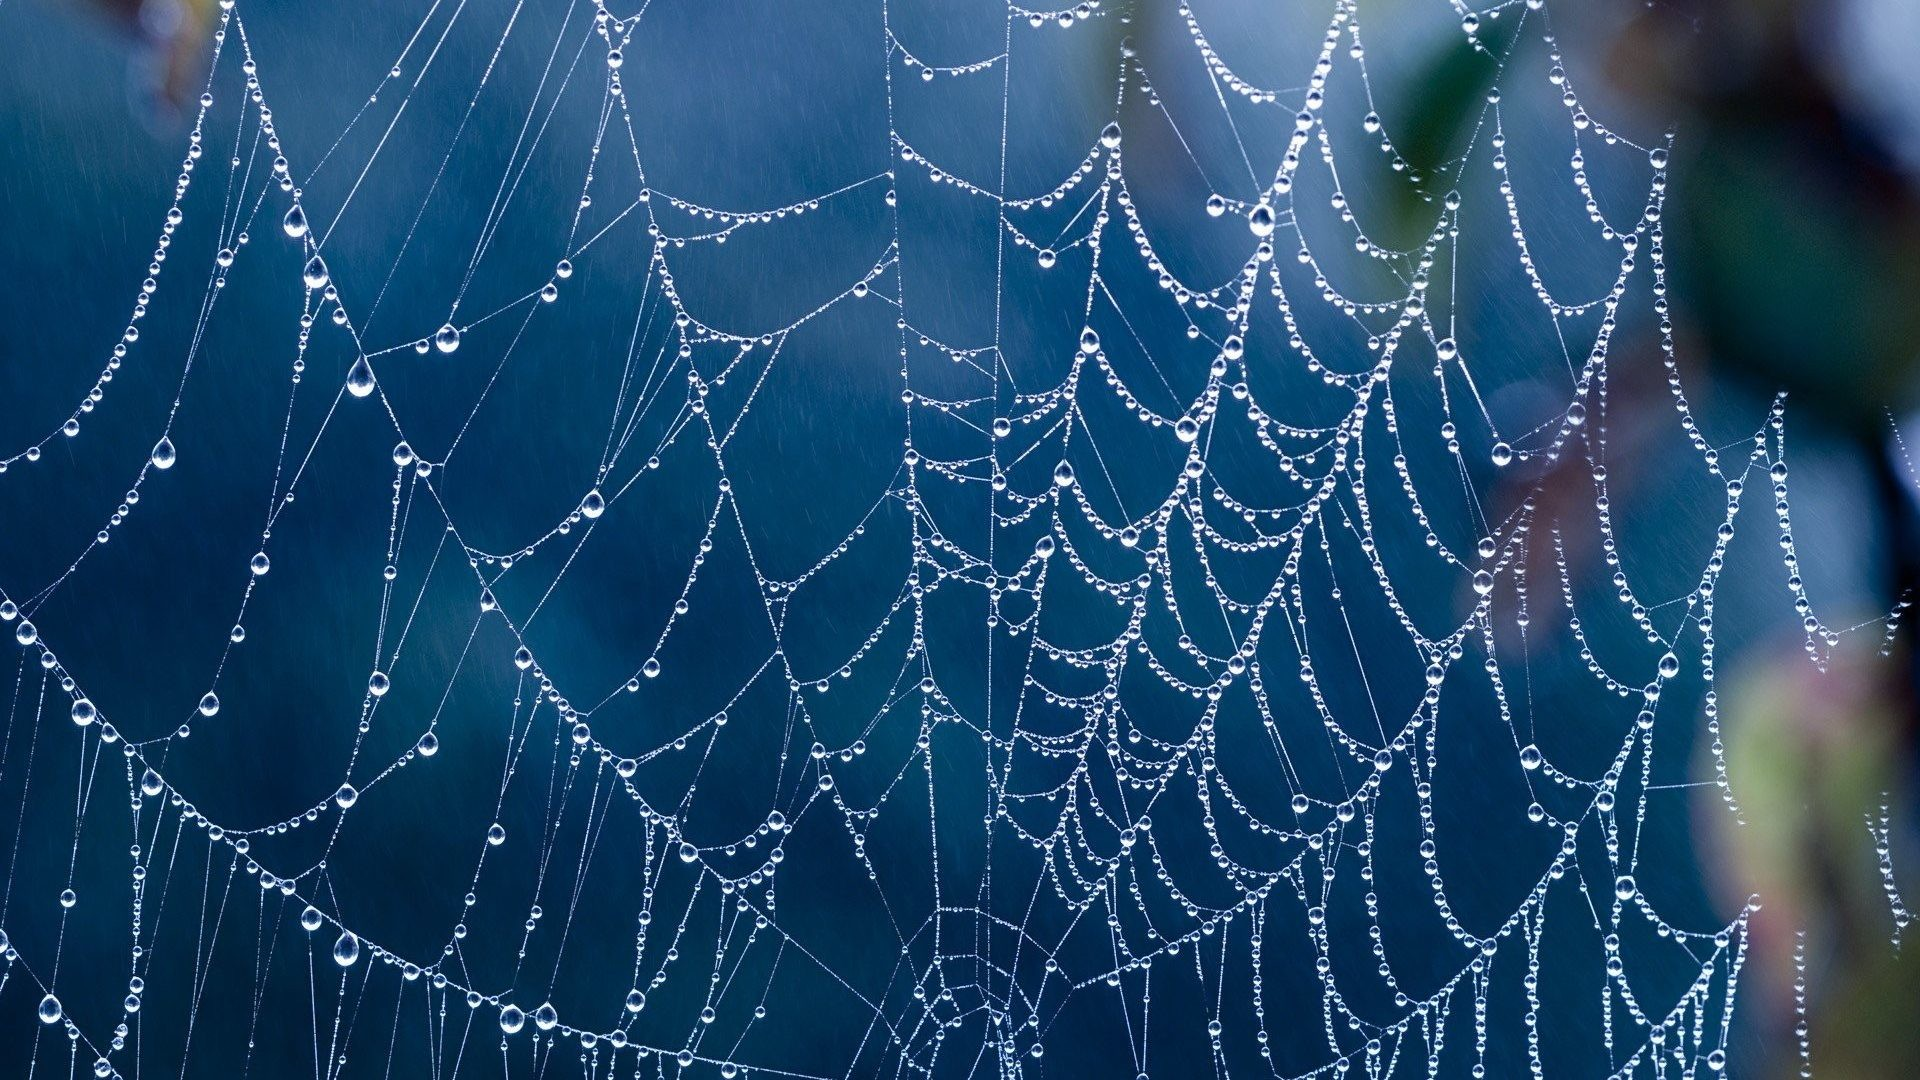 Creepy Tag – Creepy Spider Webs Hd Full Size Nature Wallpaper for HD 16:9